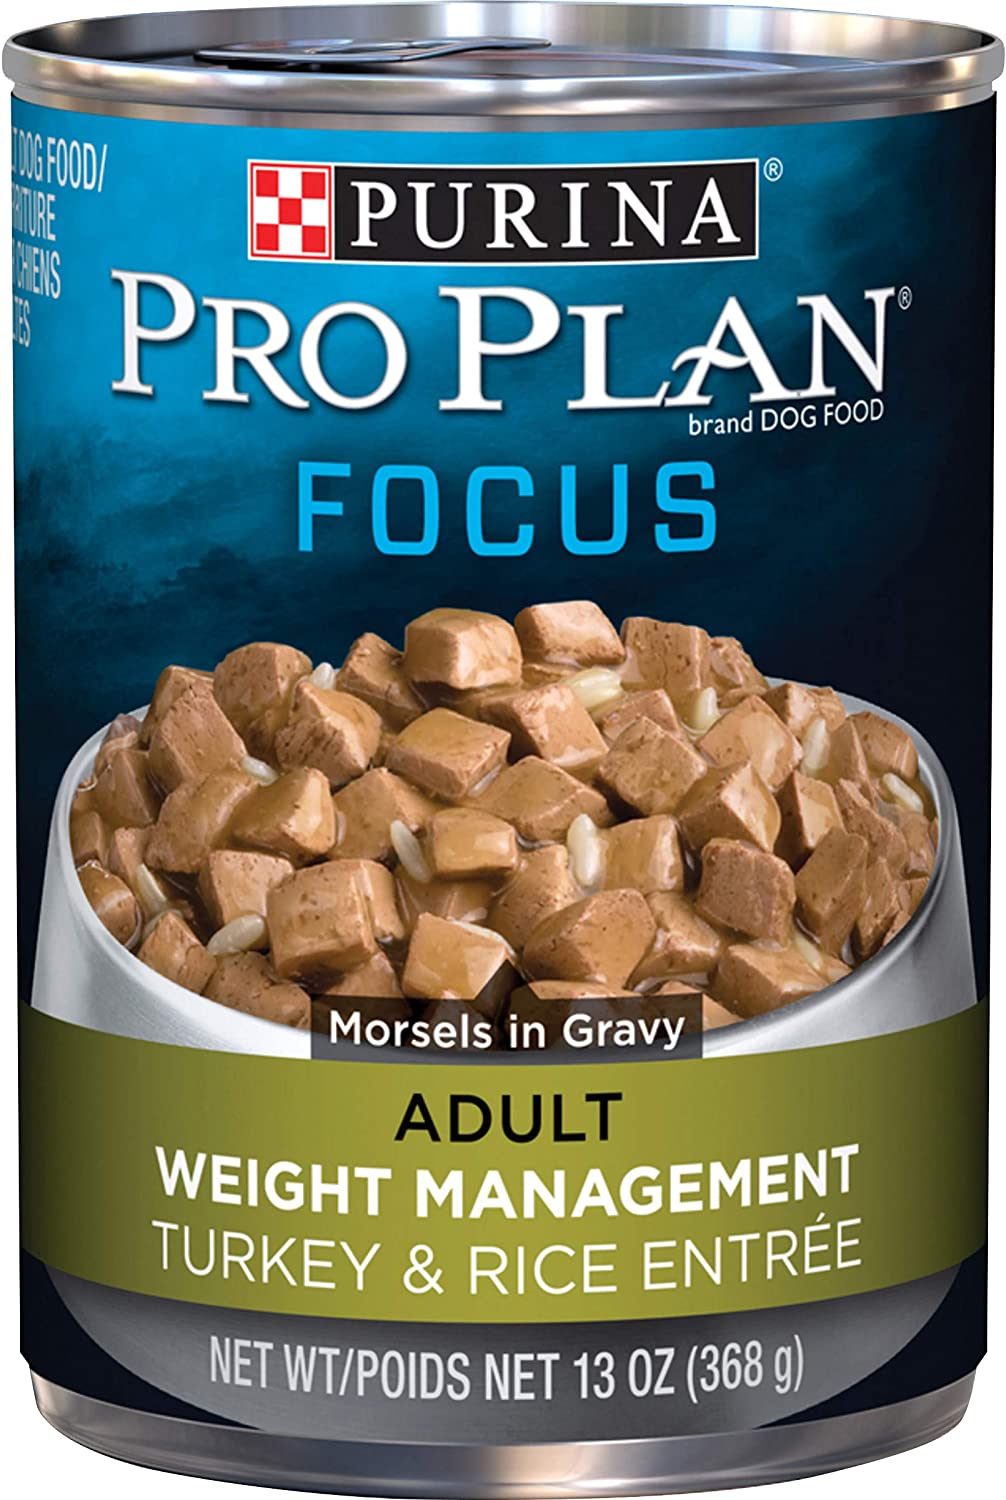 Purina Pro Plan Focus, Turkey & Rice - Wet Dog Food